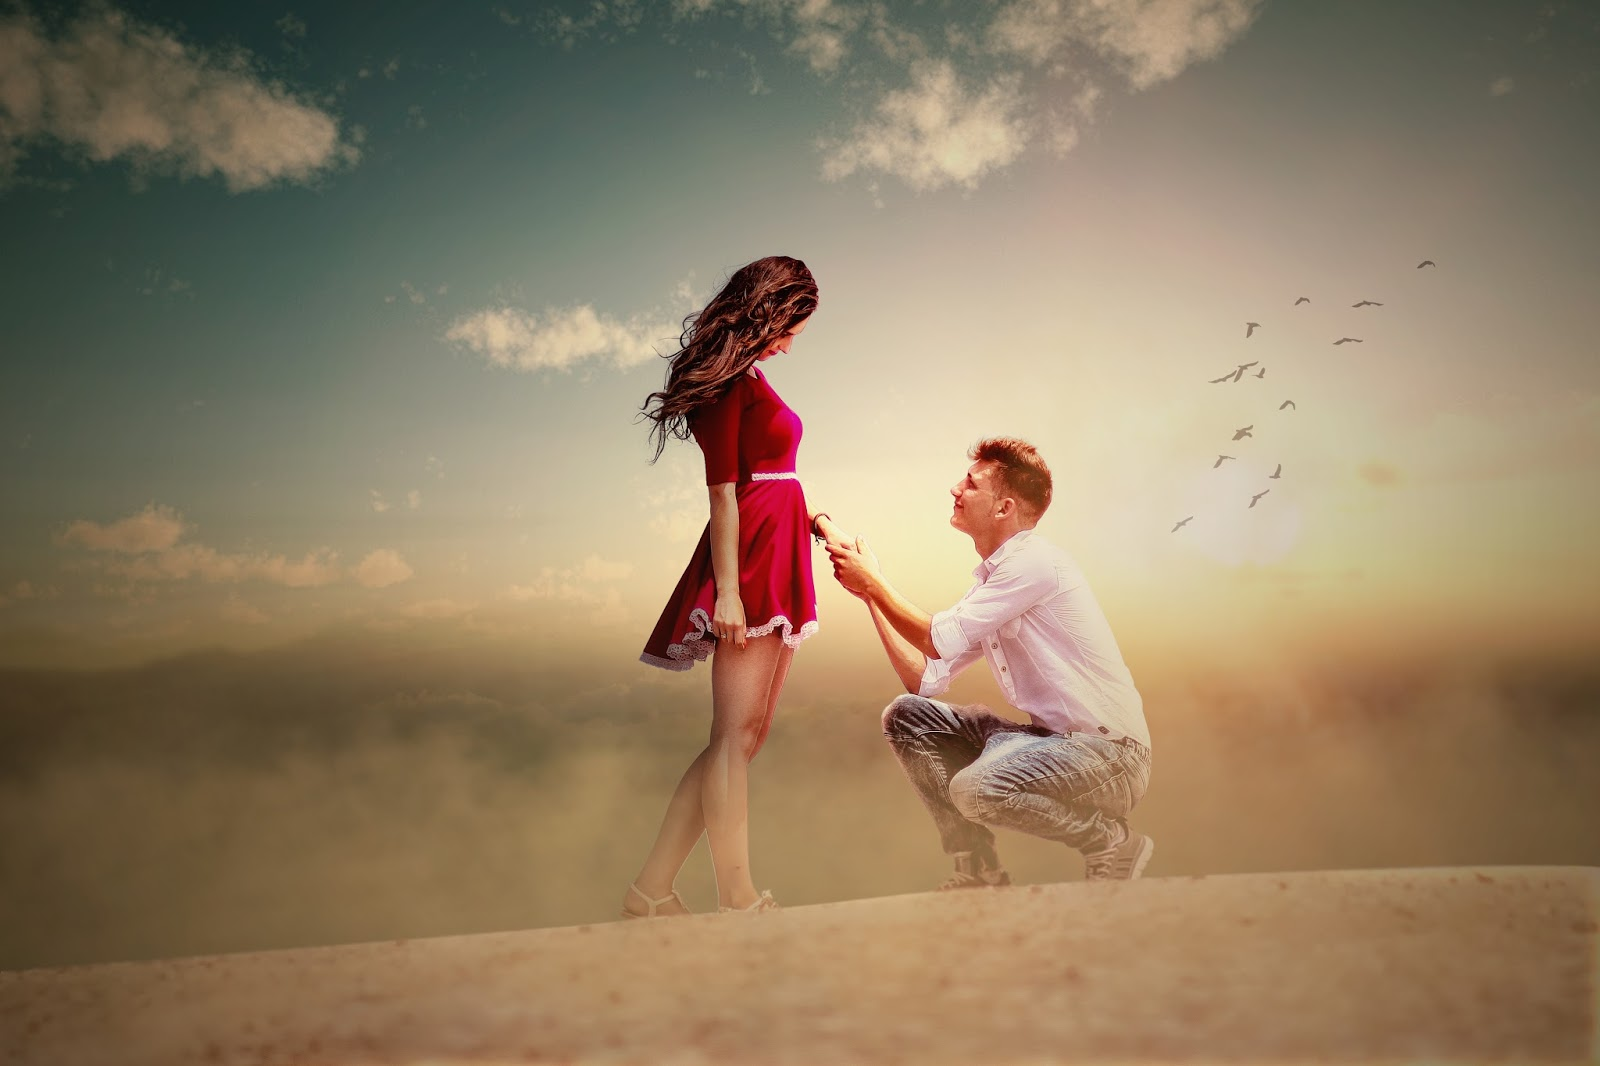 Romantic effects photo manipulation photoshop tutorial yo yo welcome to another yo yo niranjan tutorials in this tutorials i will show you how to turn a free stock image into a beautiful manipulation baditri Gallery